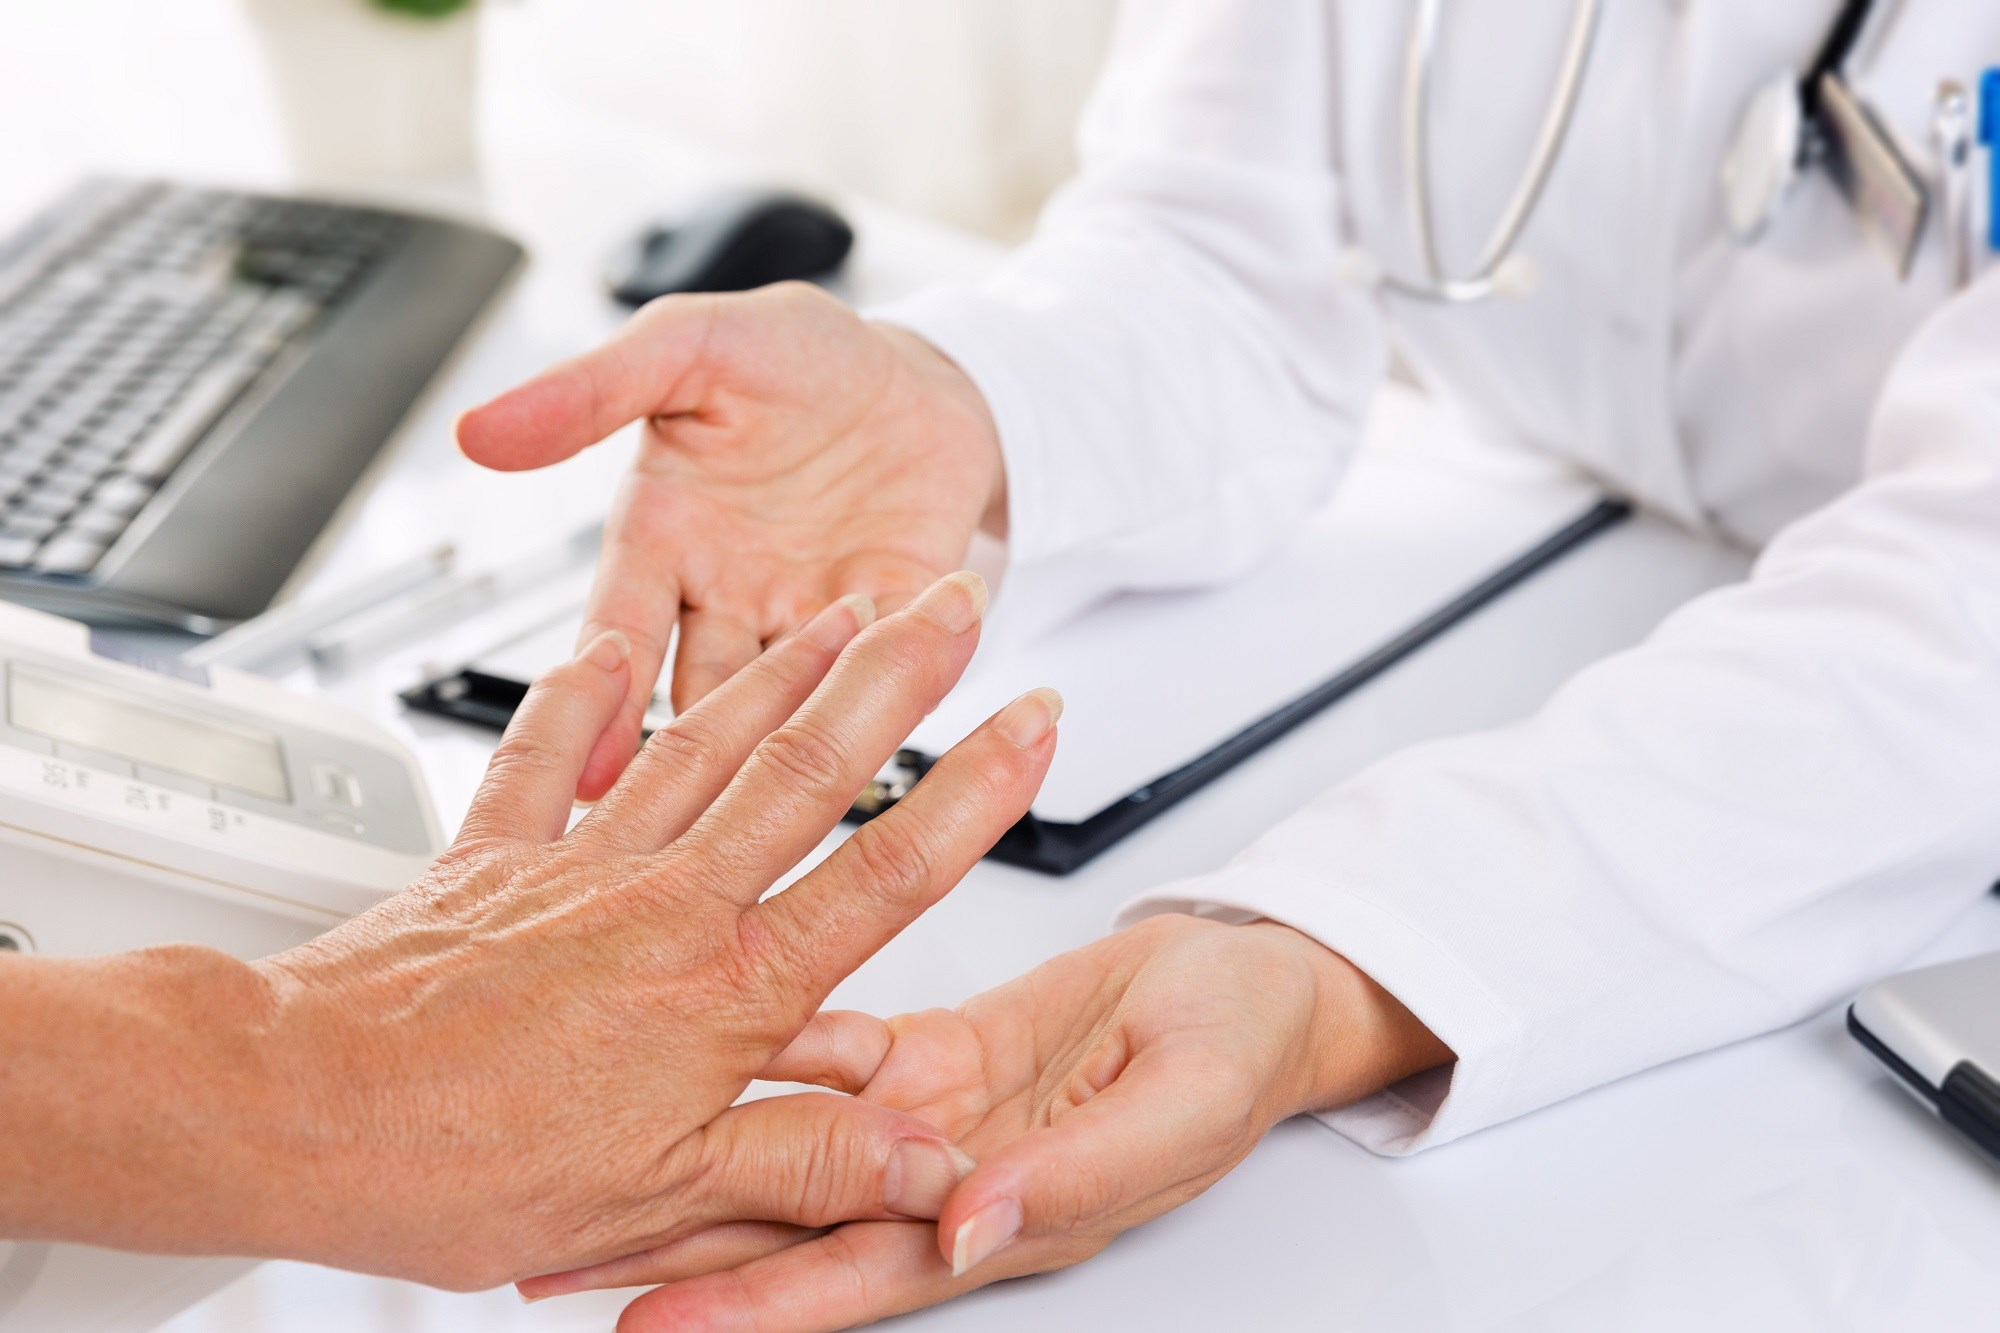 Expanding Healthcare Access With Nurse-Led Care in Rheumatoid Arthritis